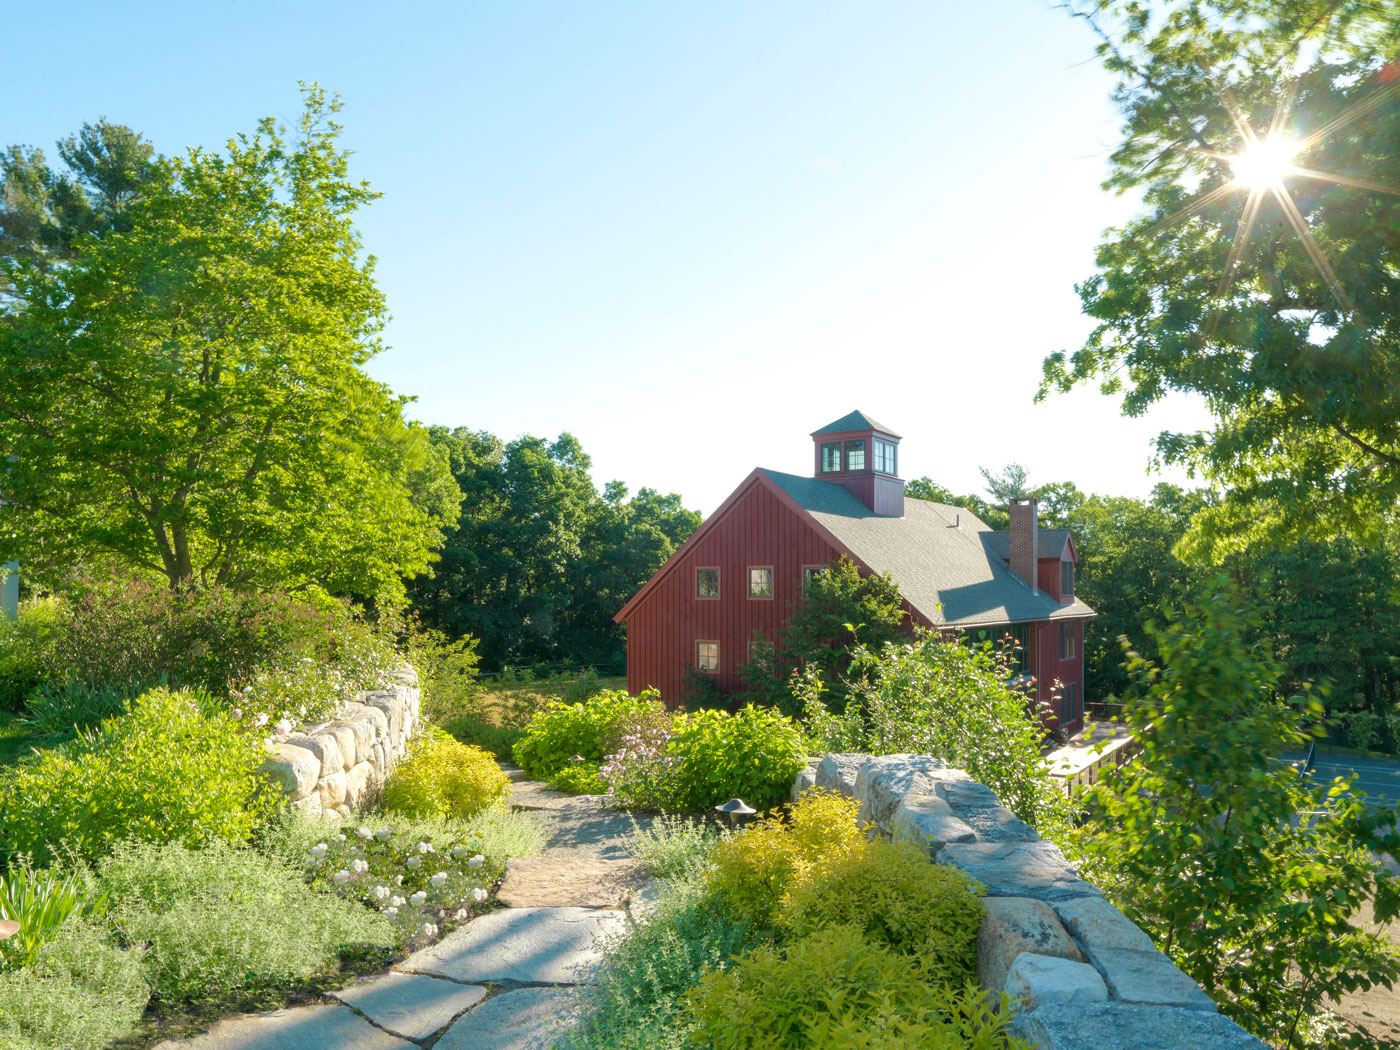 Rustic high-end landscape design by Gregory Lombardi Design